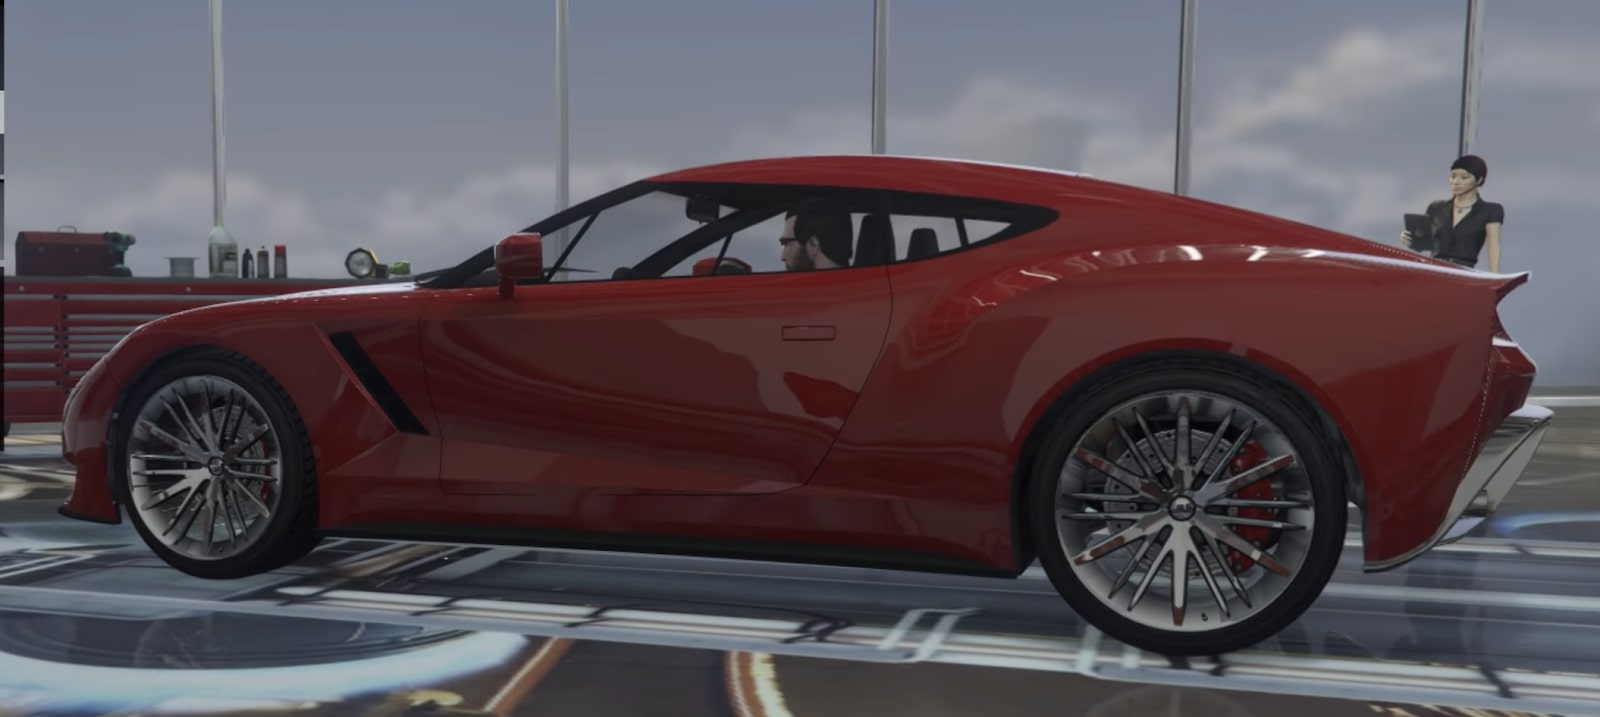 2nd fastest car: Ocelot Pariah